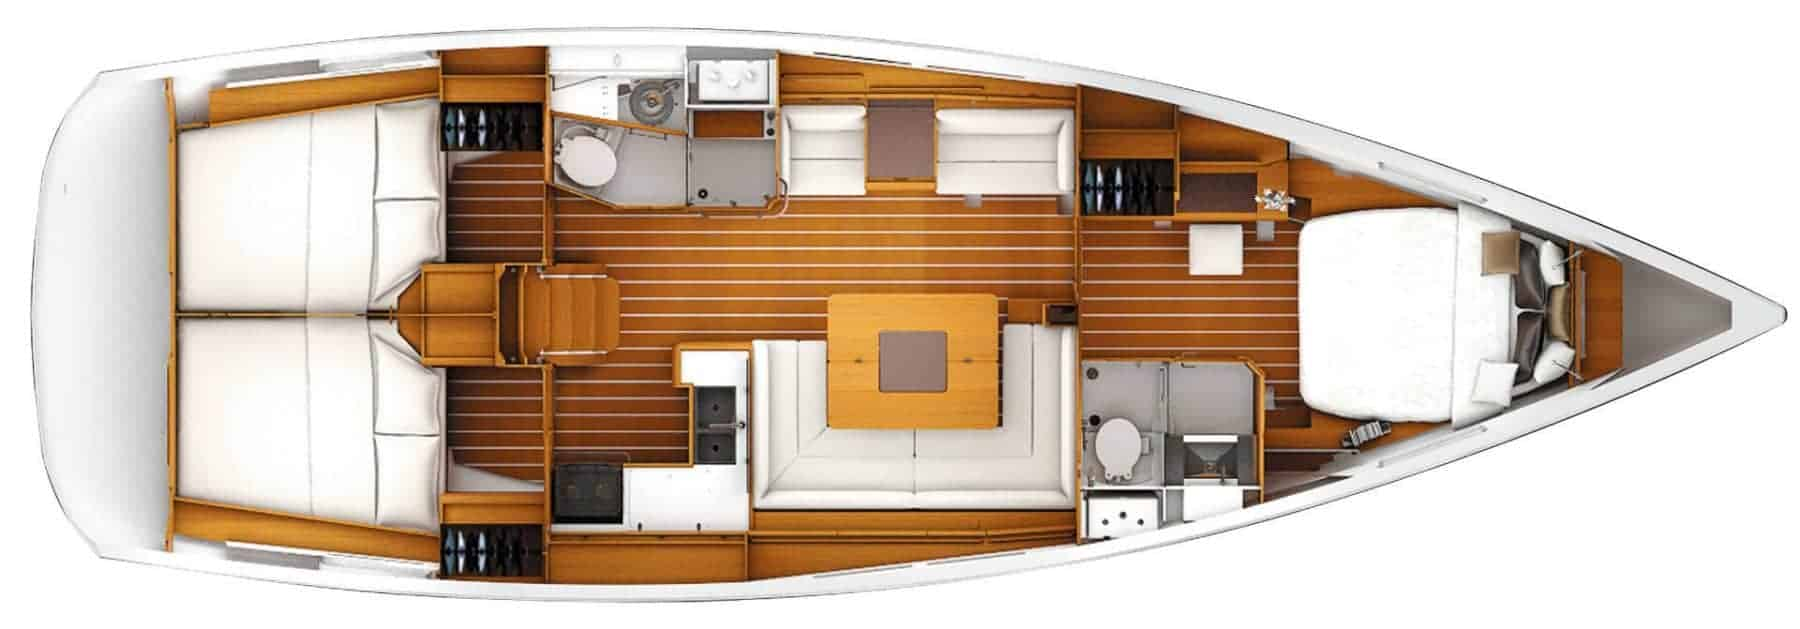 View from above showing the interior of the Jeanneau Sun Odyssey 449